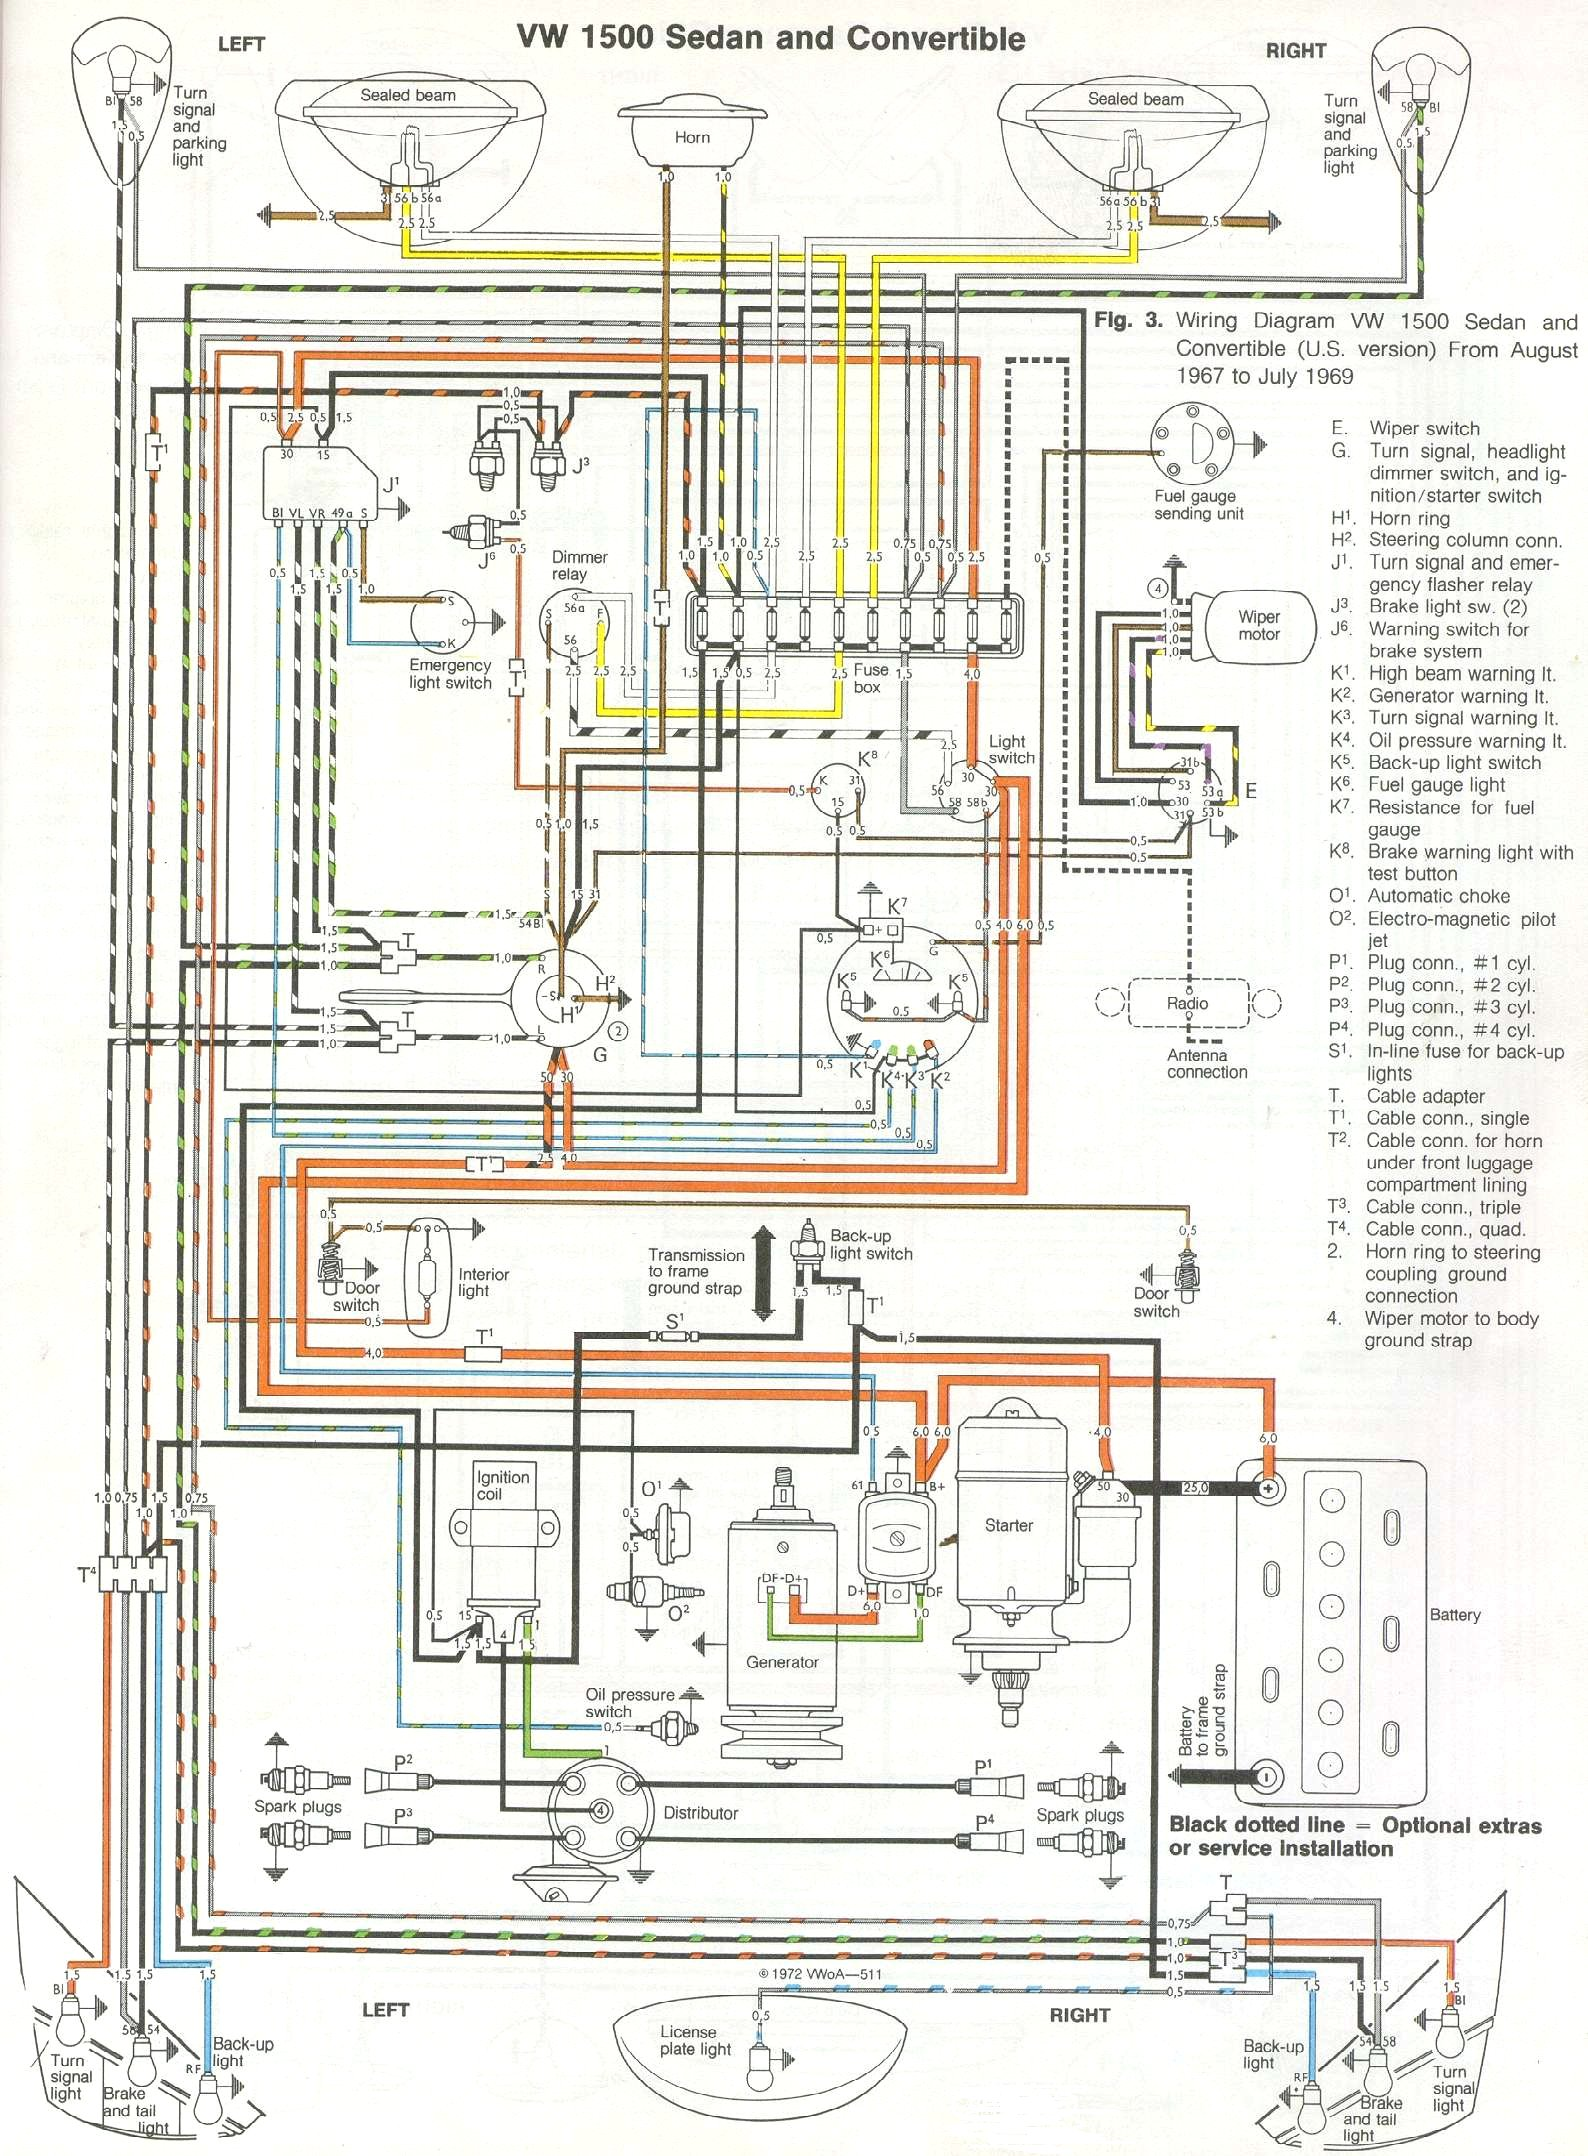 bug_6869 vw wiring harness diagram cj7 wiring harness diagram \u2022 wiring 1971 vw bus wiring diagram at gsmportal.co